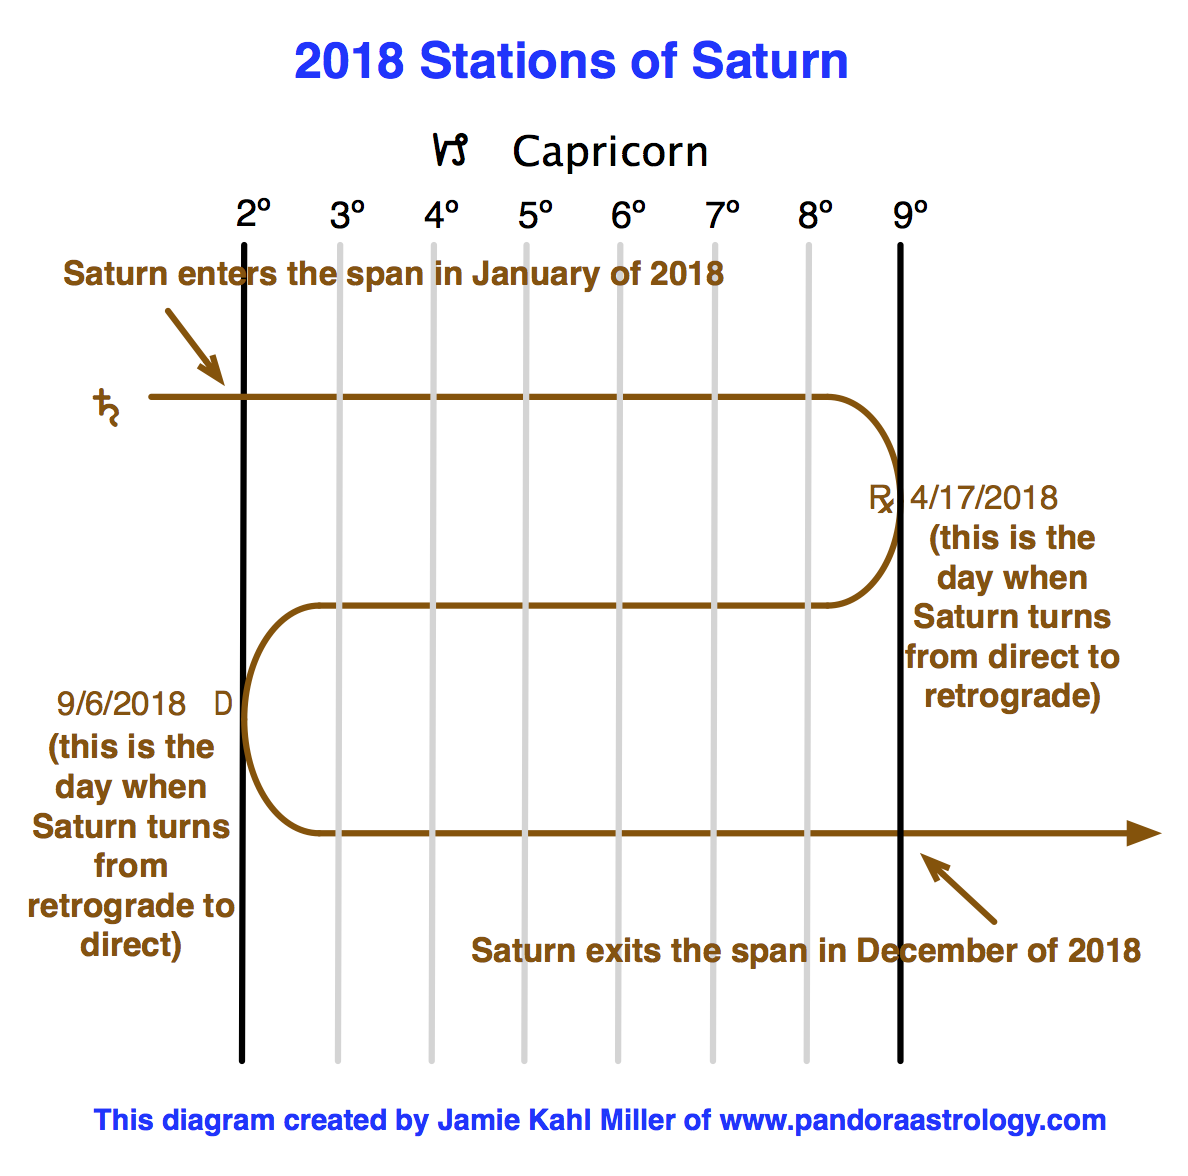 This years stations of saturn pandora astrology aries and cancer if you have any planet in 2 to 9 degrees of any of those signs that planet is also having a saturn transit nvjuhfo Choice Image